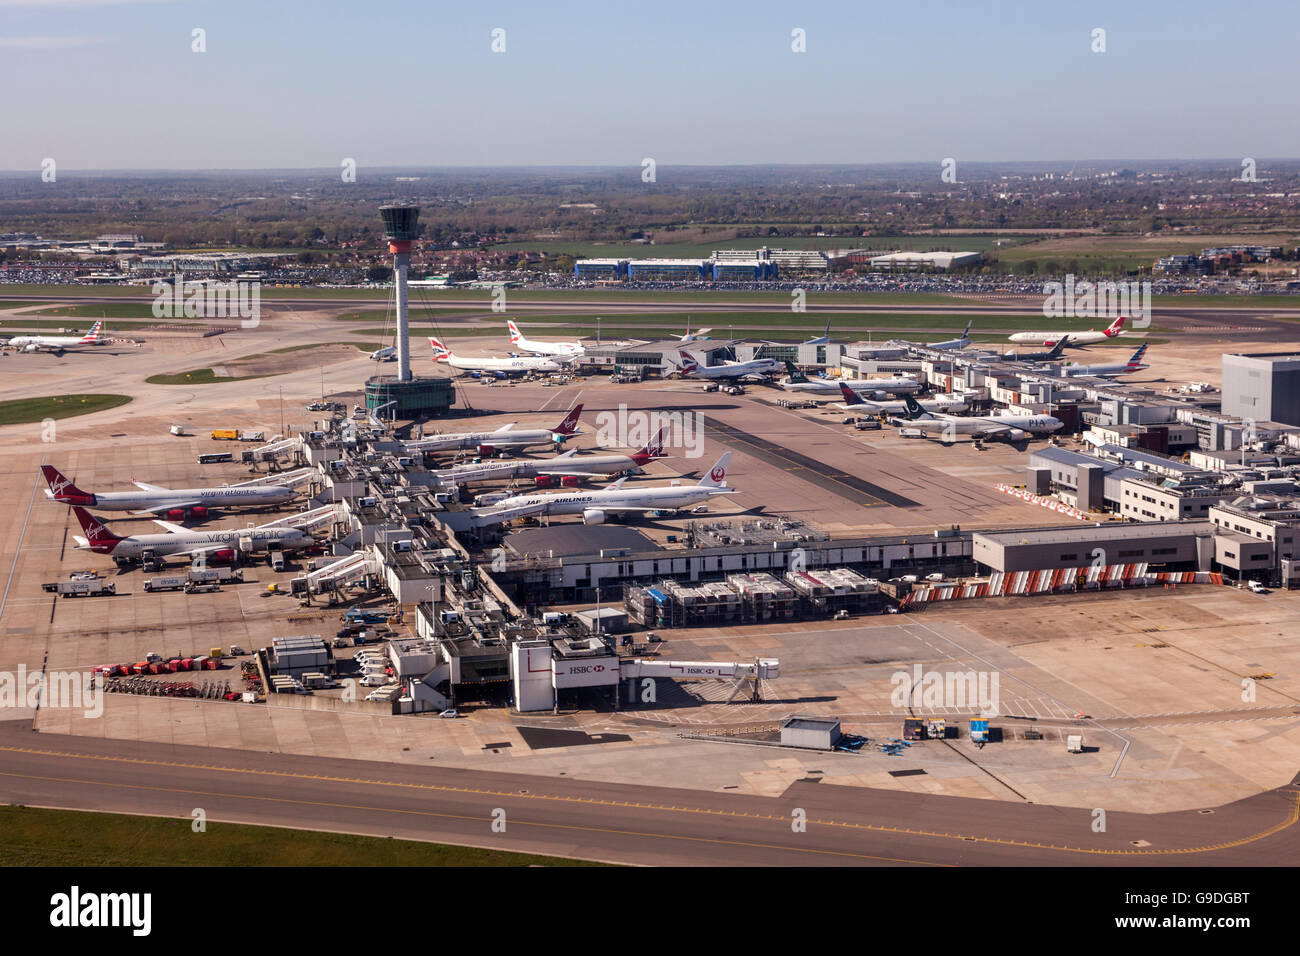 Aerial view of the London Heathrow Airport - Stock Image